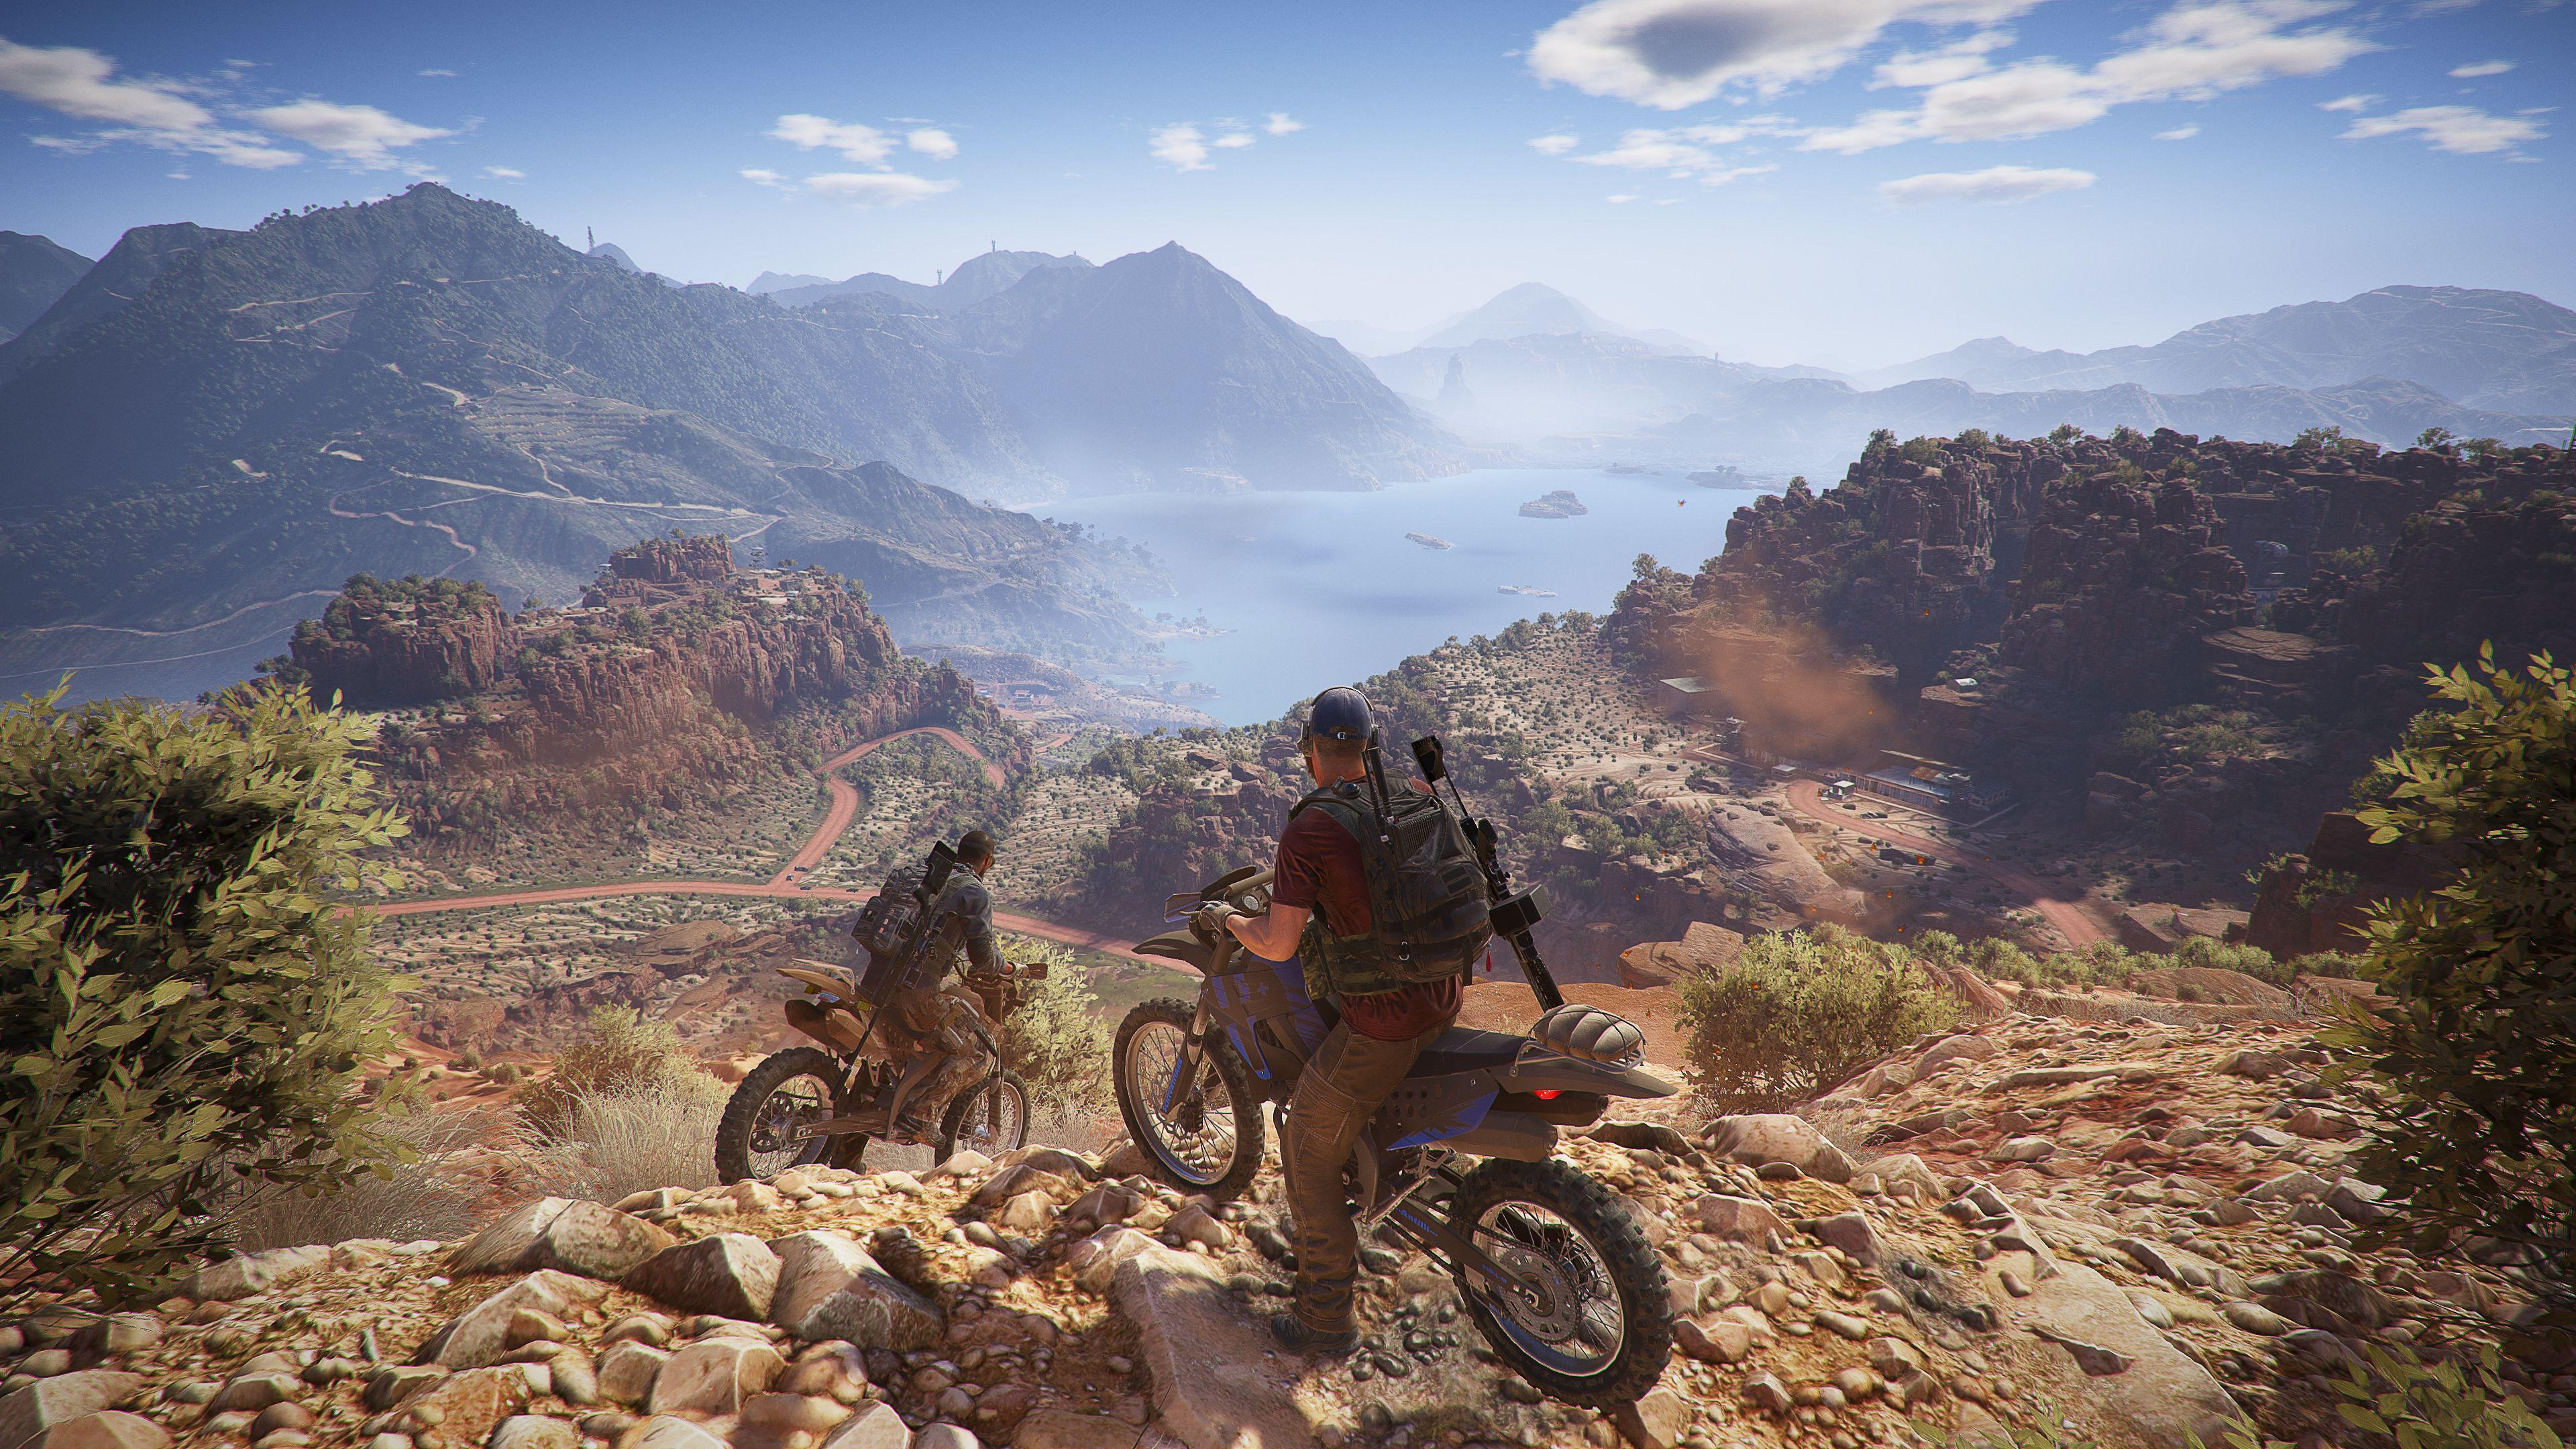 Wildlands truly looks stunning when played in 4K on a high-powered PC